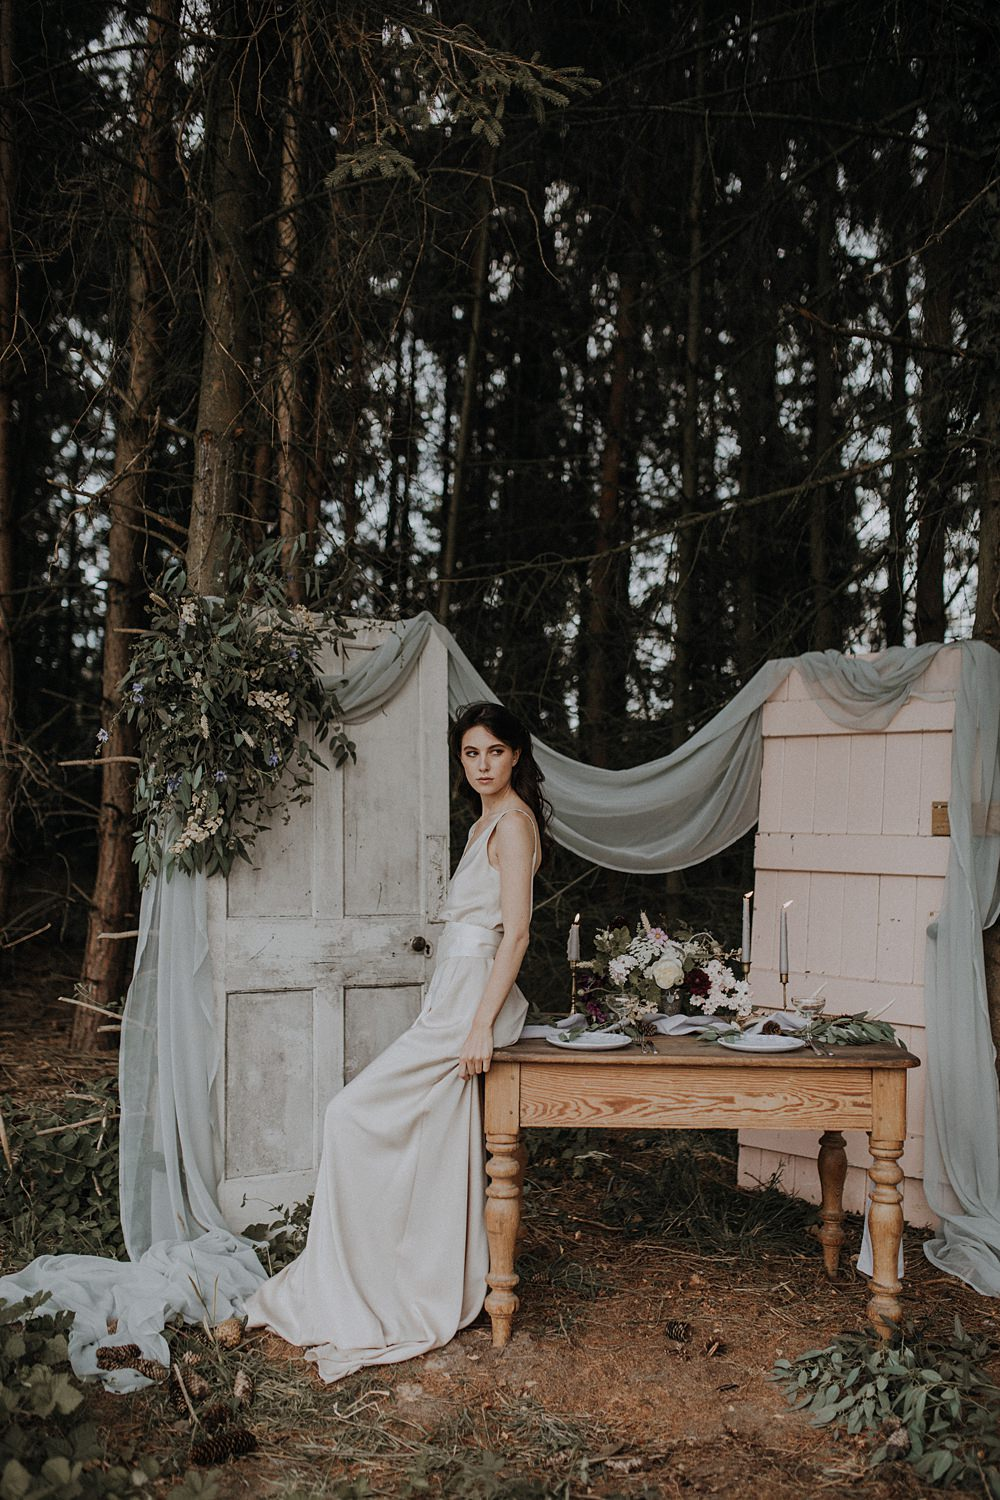 Table Tablescape Outdoors Grey Fabric Greenery Foliage Doors Antique Decor Backdrop Bohemian Woodland Wedding Ideas Lola Rose Photography